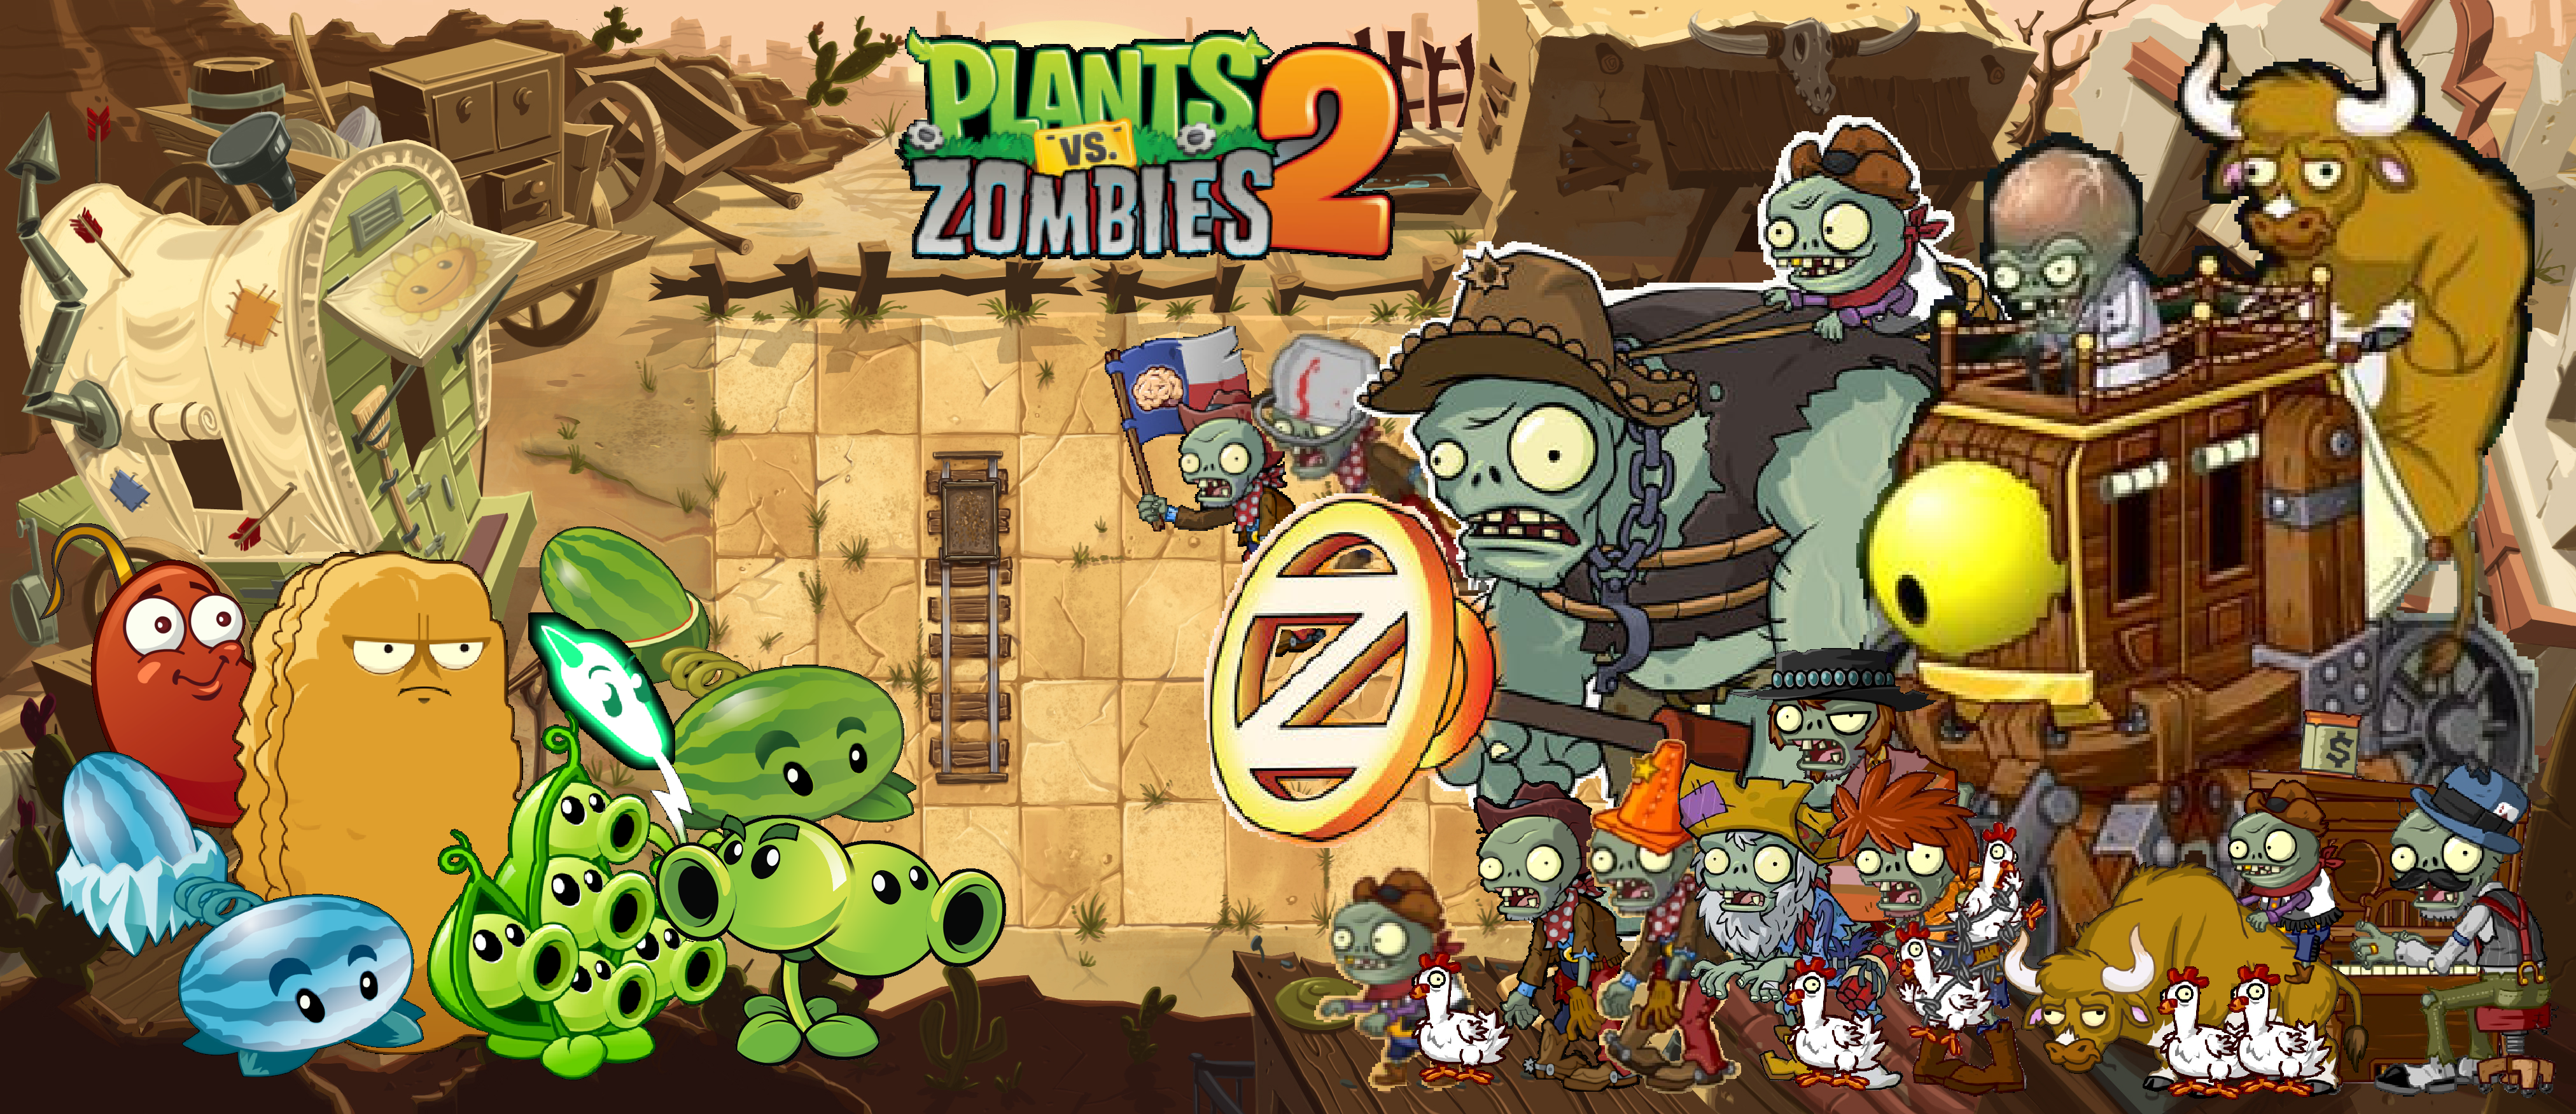 Plants Vs Zombies 2 Wild West Wallpaper By Photographerferd On